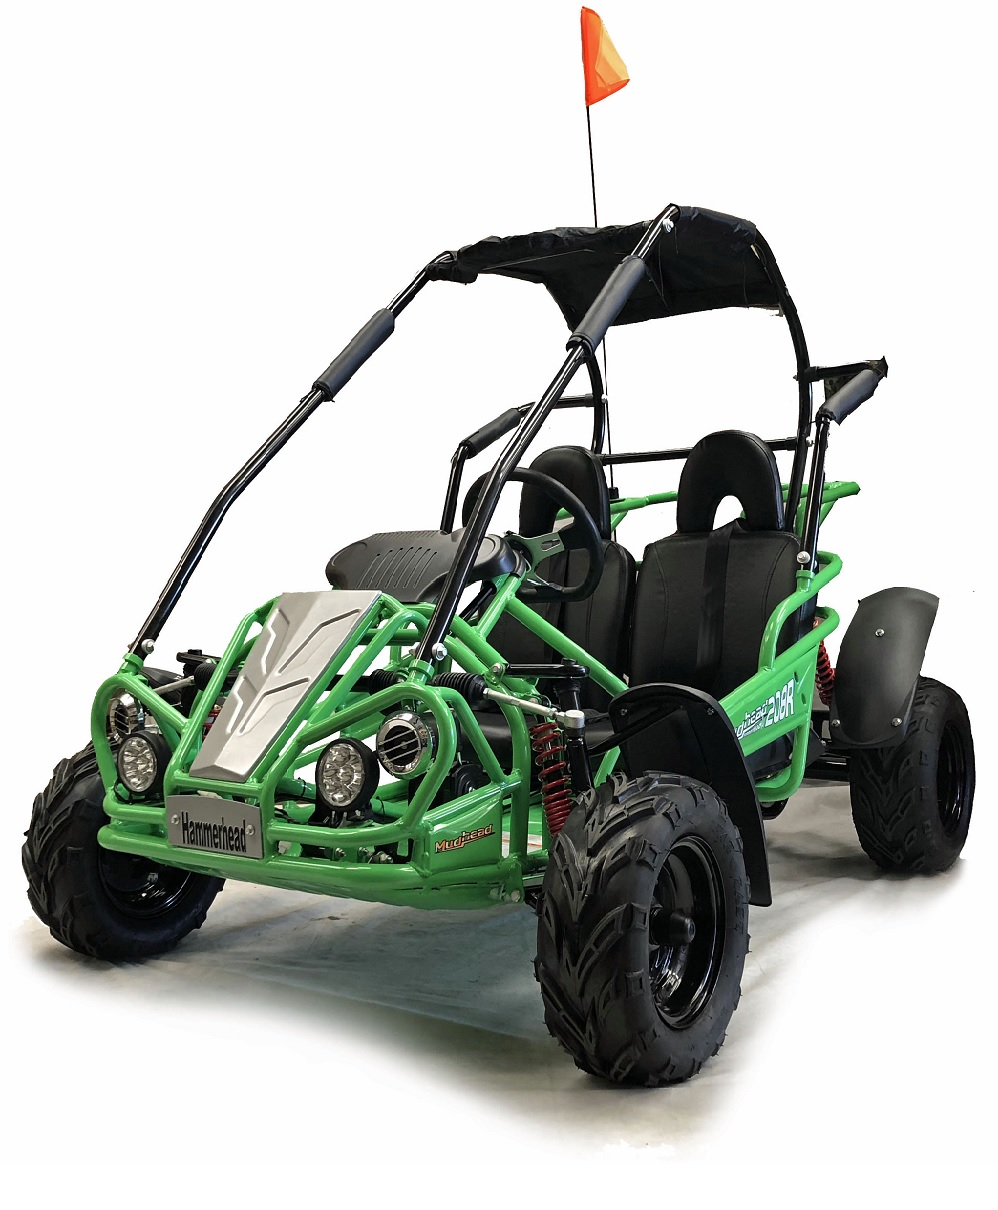 Off Road Buggies On Sale